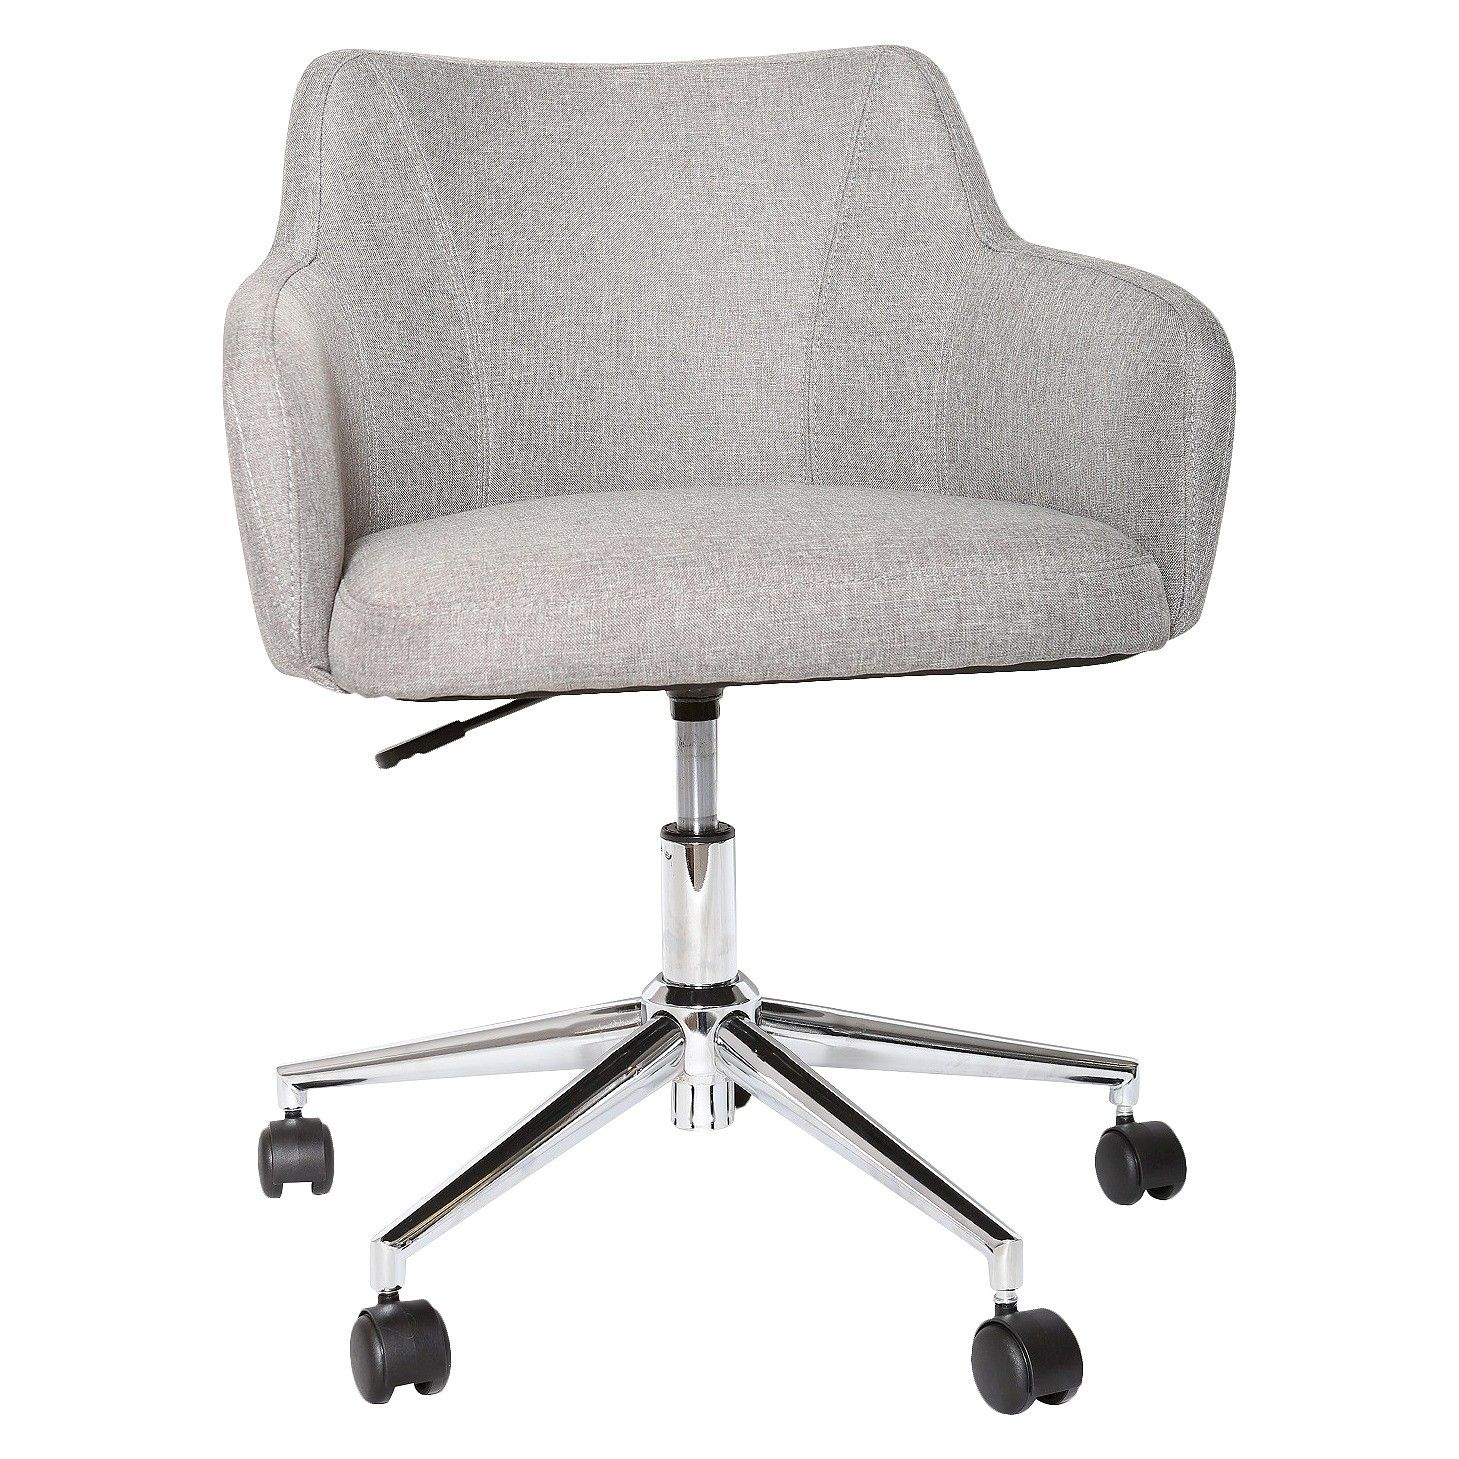 Room Essentials Office Chair Upholstered Grey Linen Stylish Office Chairs Upholstered Office Chair Office Chair